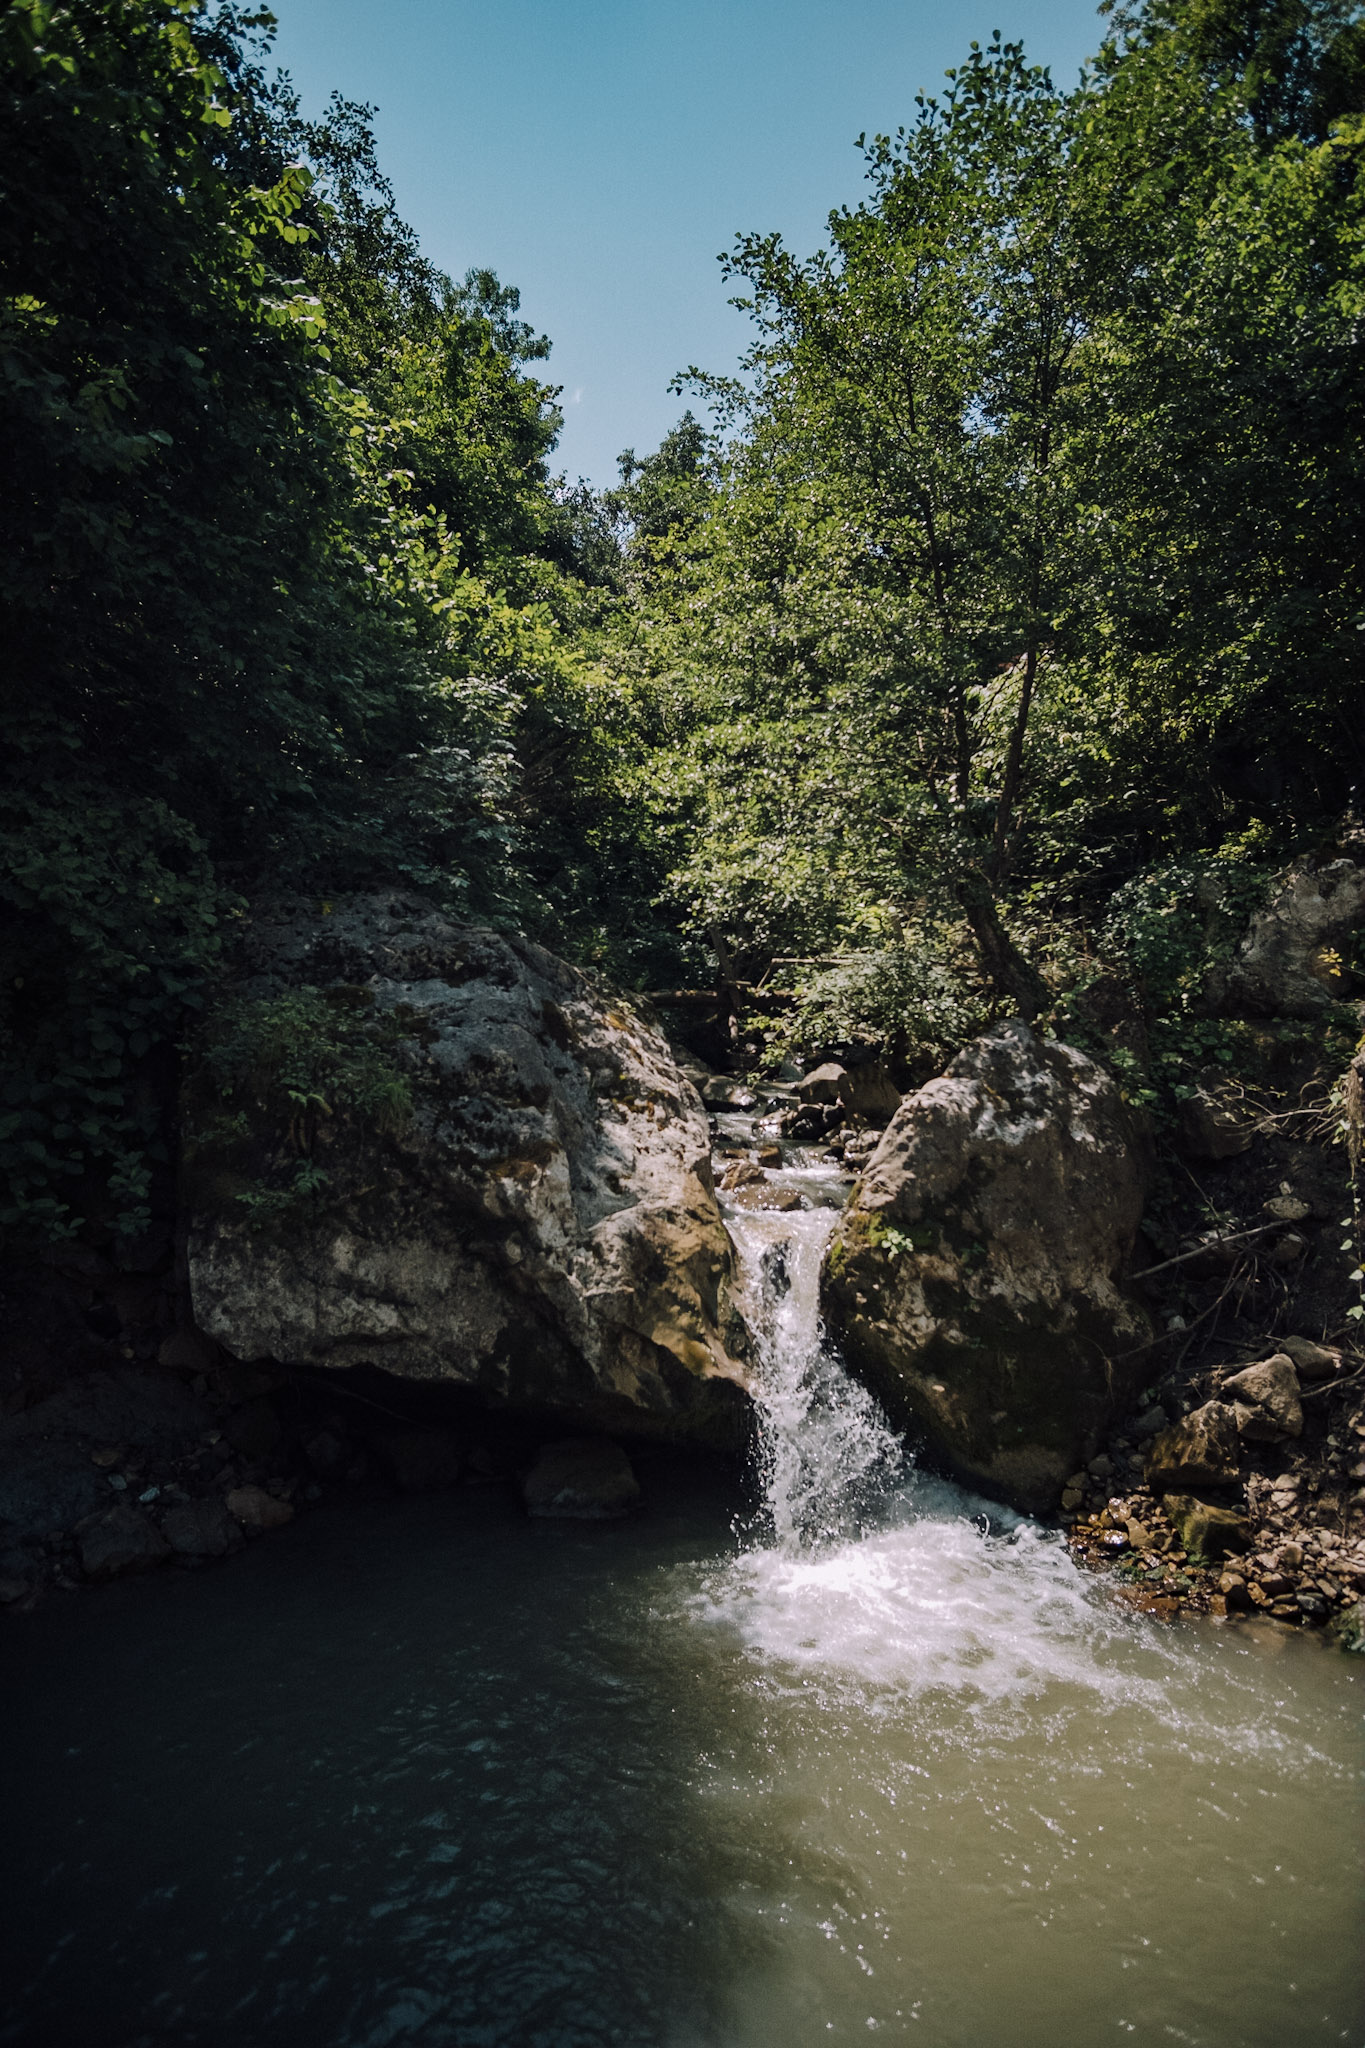 Dmitri Mais' shot of a waterfall and swimming hole on Paradise Trail